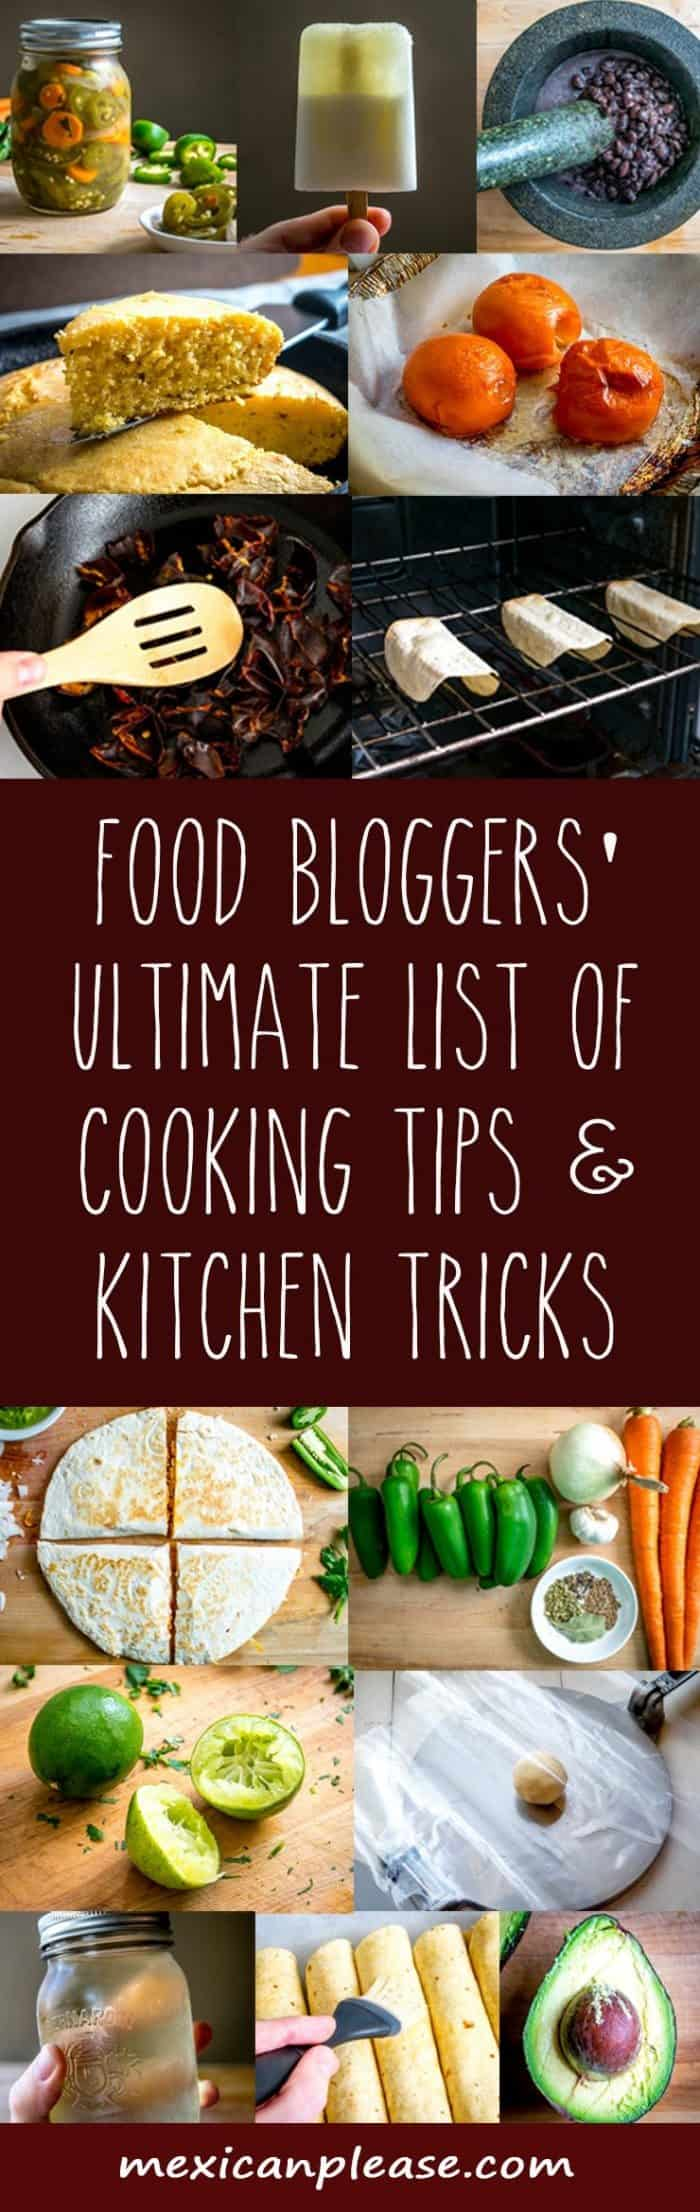 food-blogger-cooking-tips-title